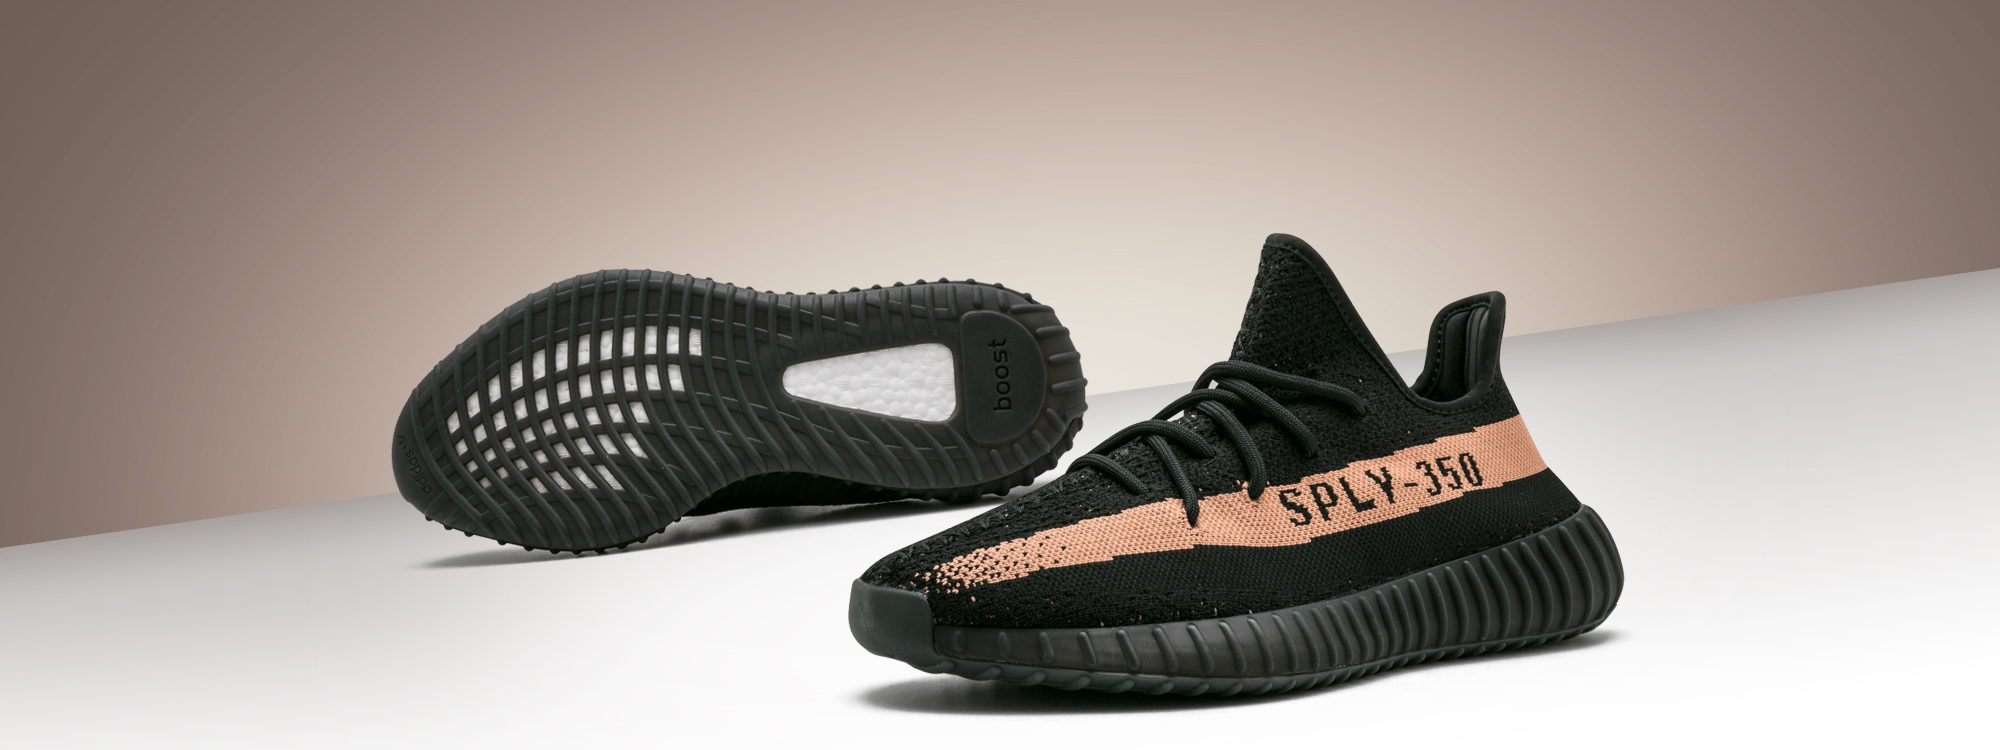 Perfect Adidas Yeezy Boost 350 V2 Copper Free Shipping via DHL cheap